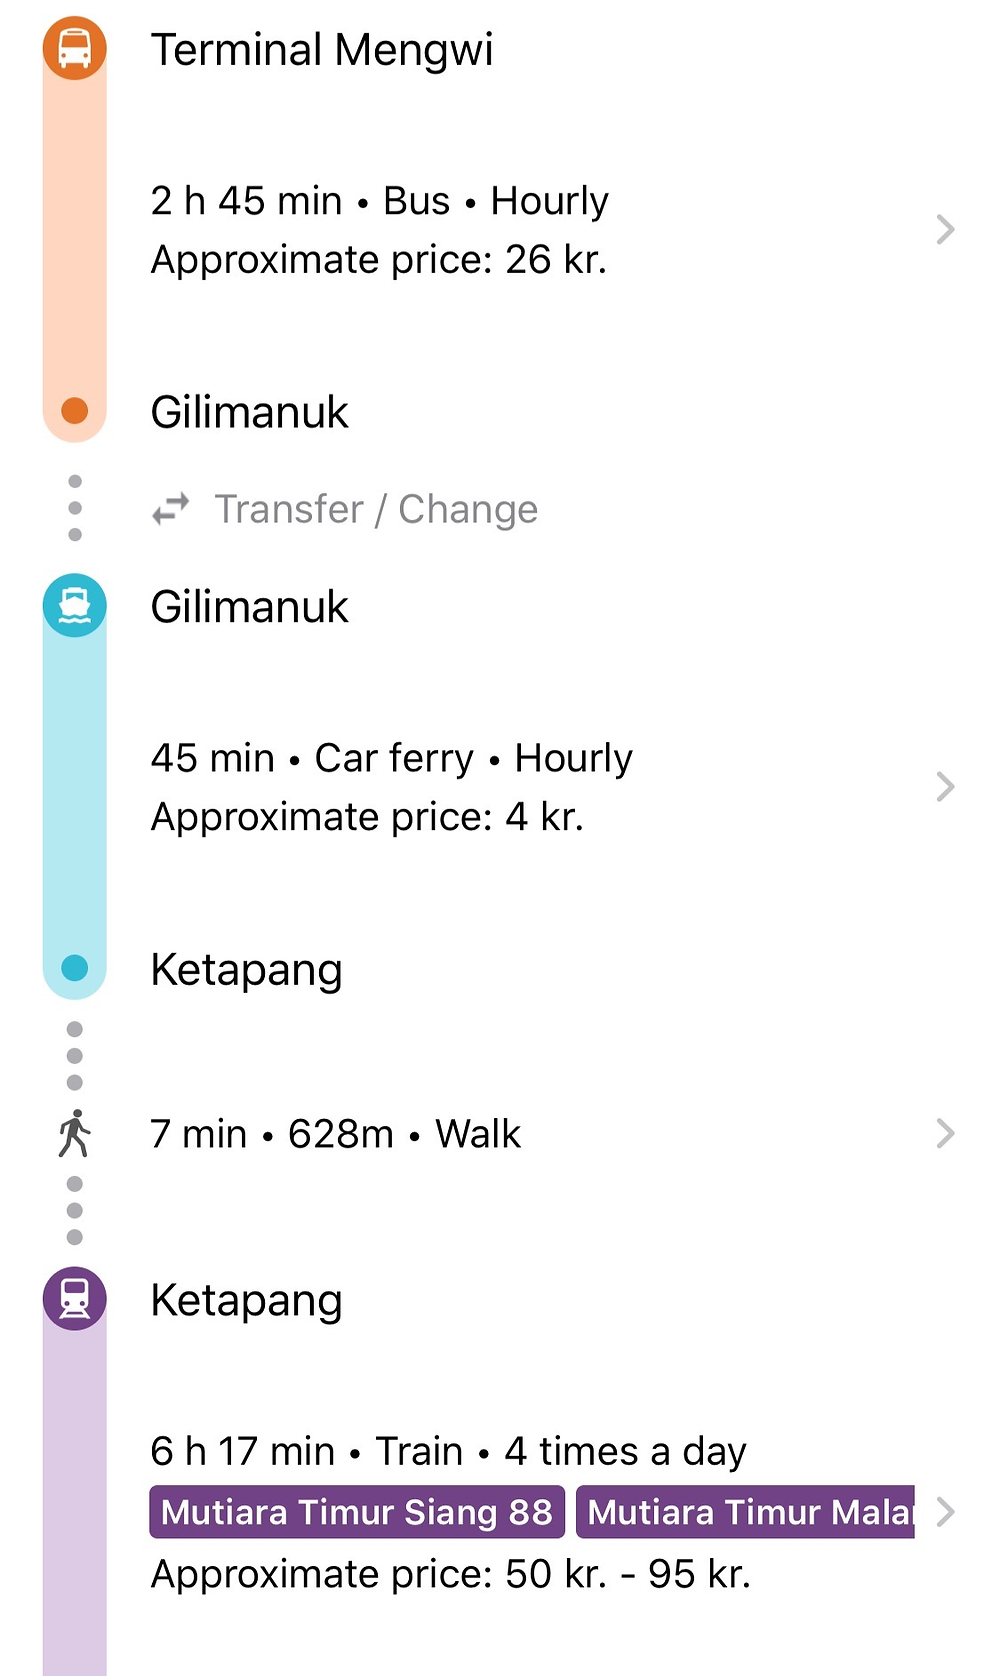 Detailed route description from Bali to Raja Ampat